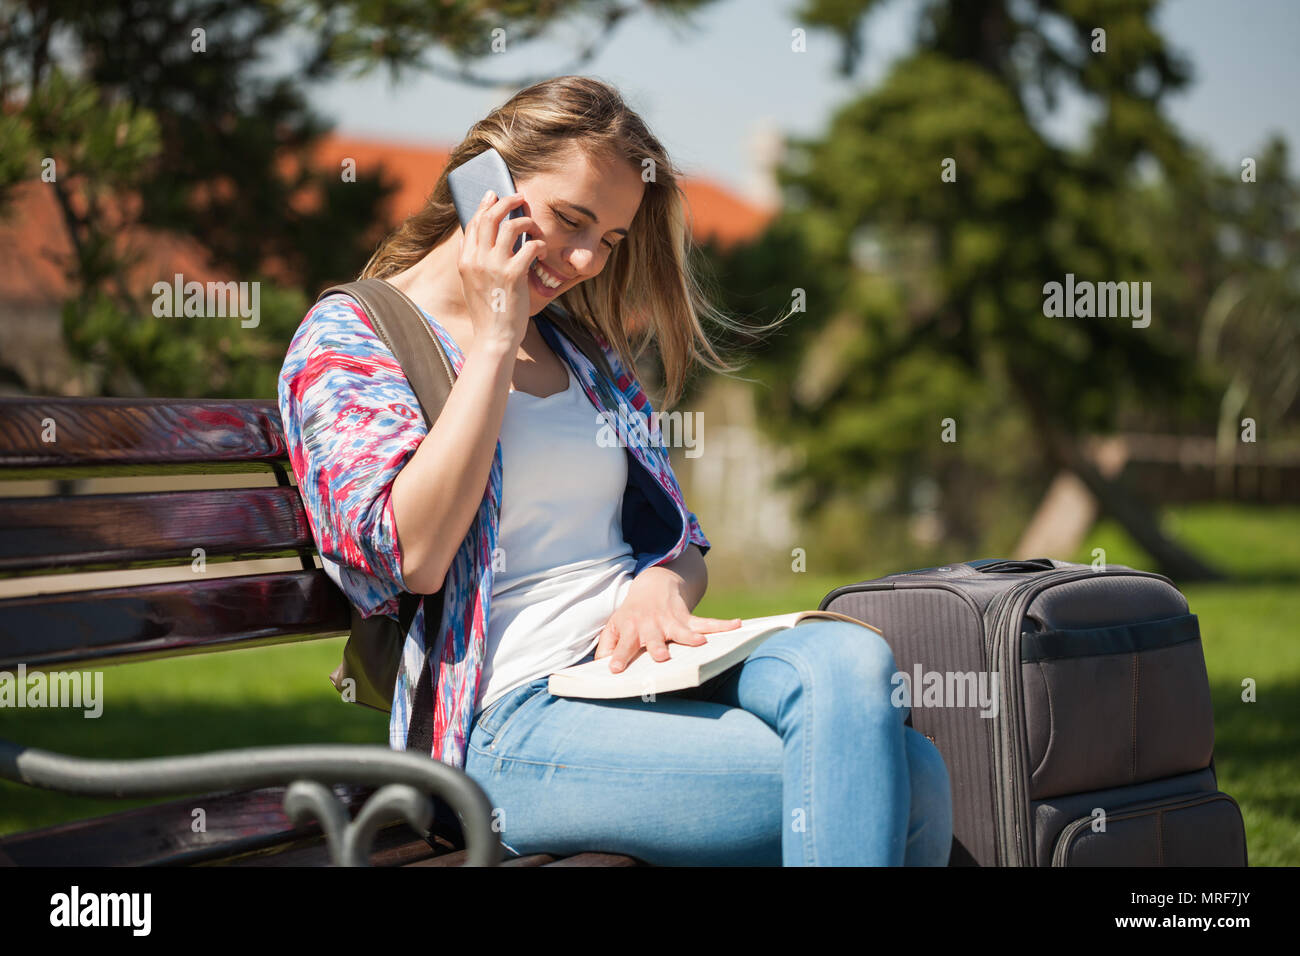 Young woman is going on city tour. She is looking city guide and talking on phone. - Stock Image